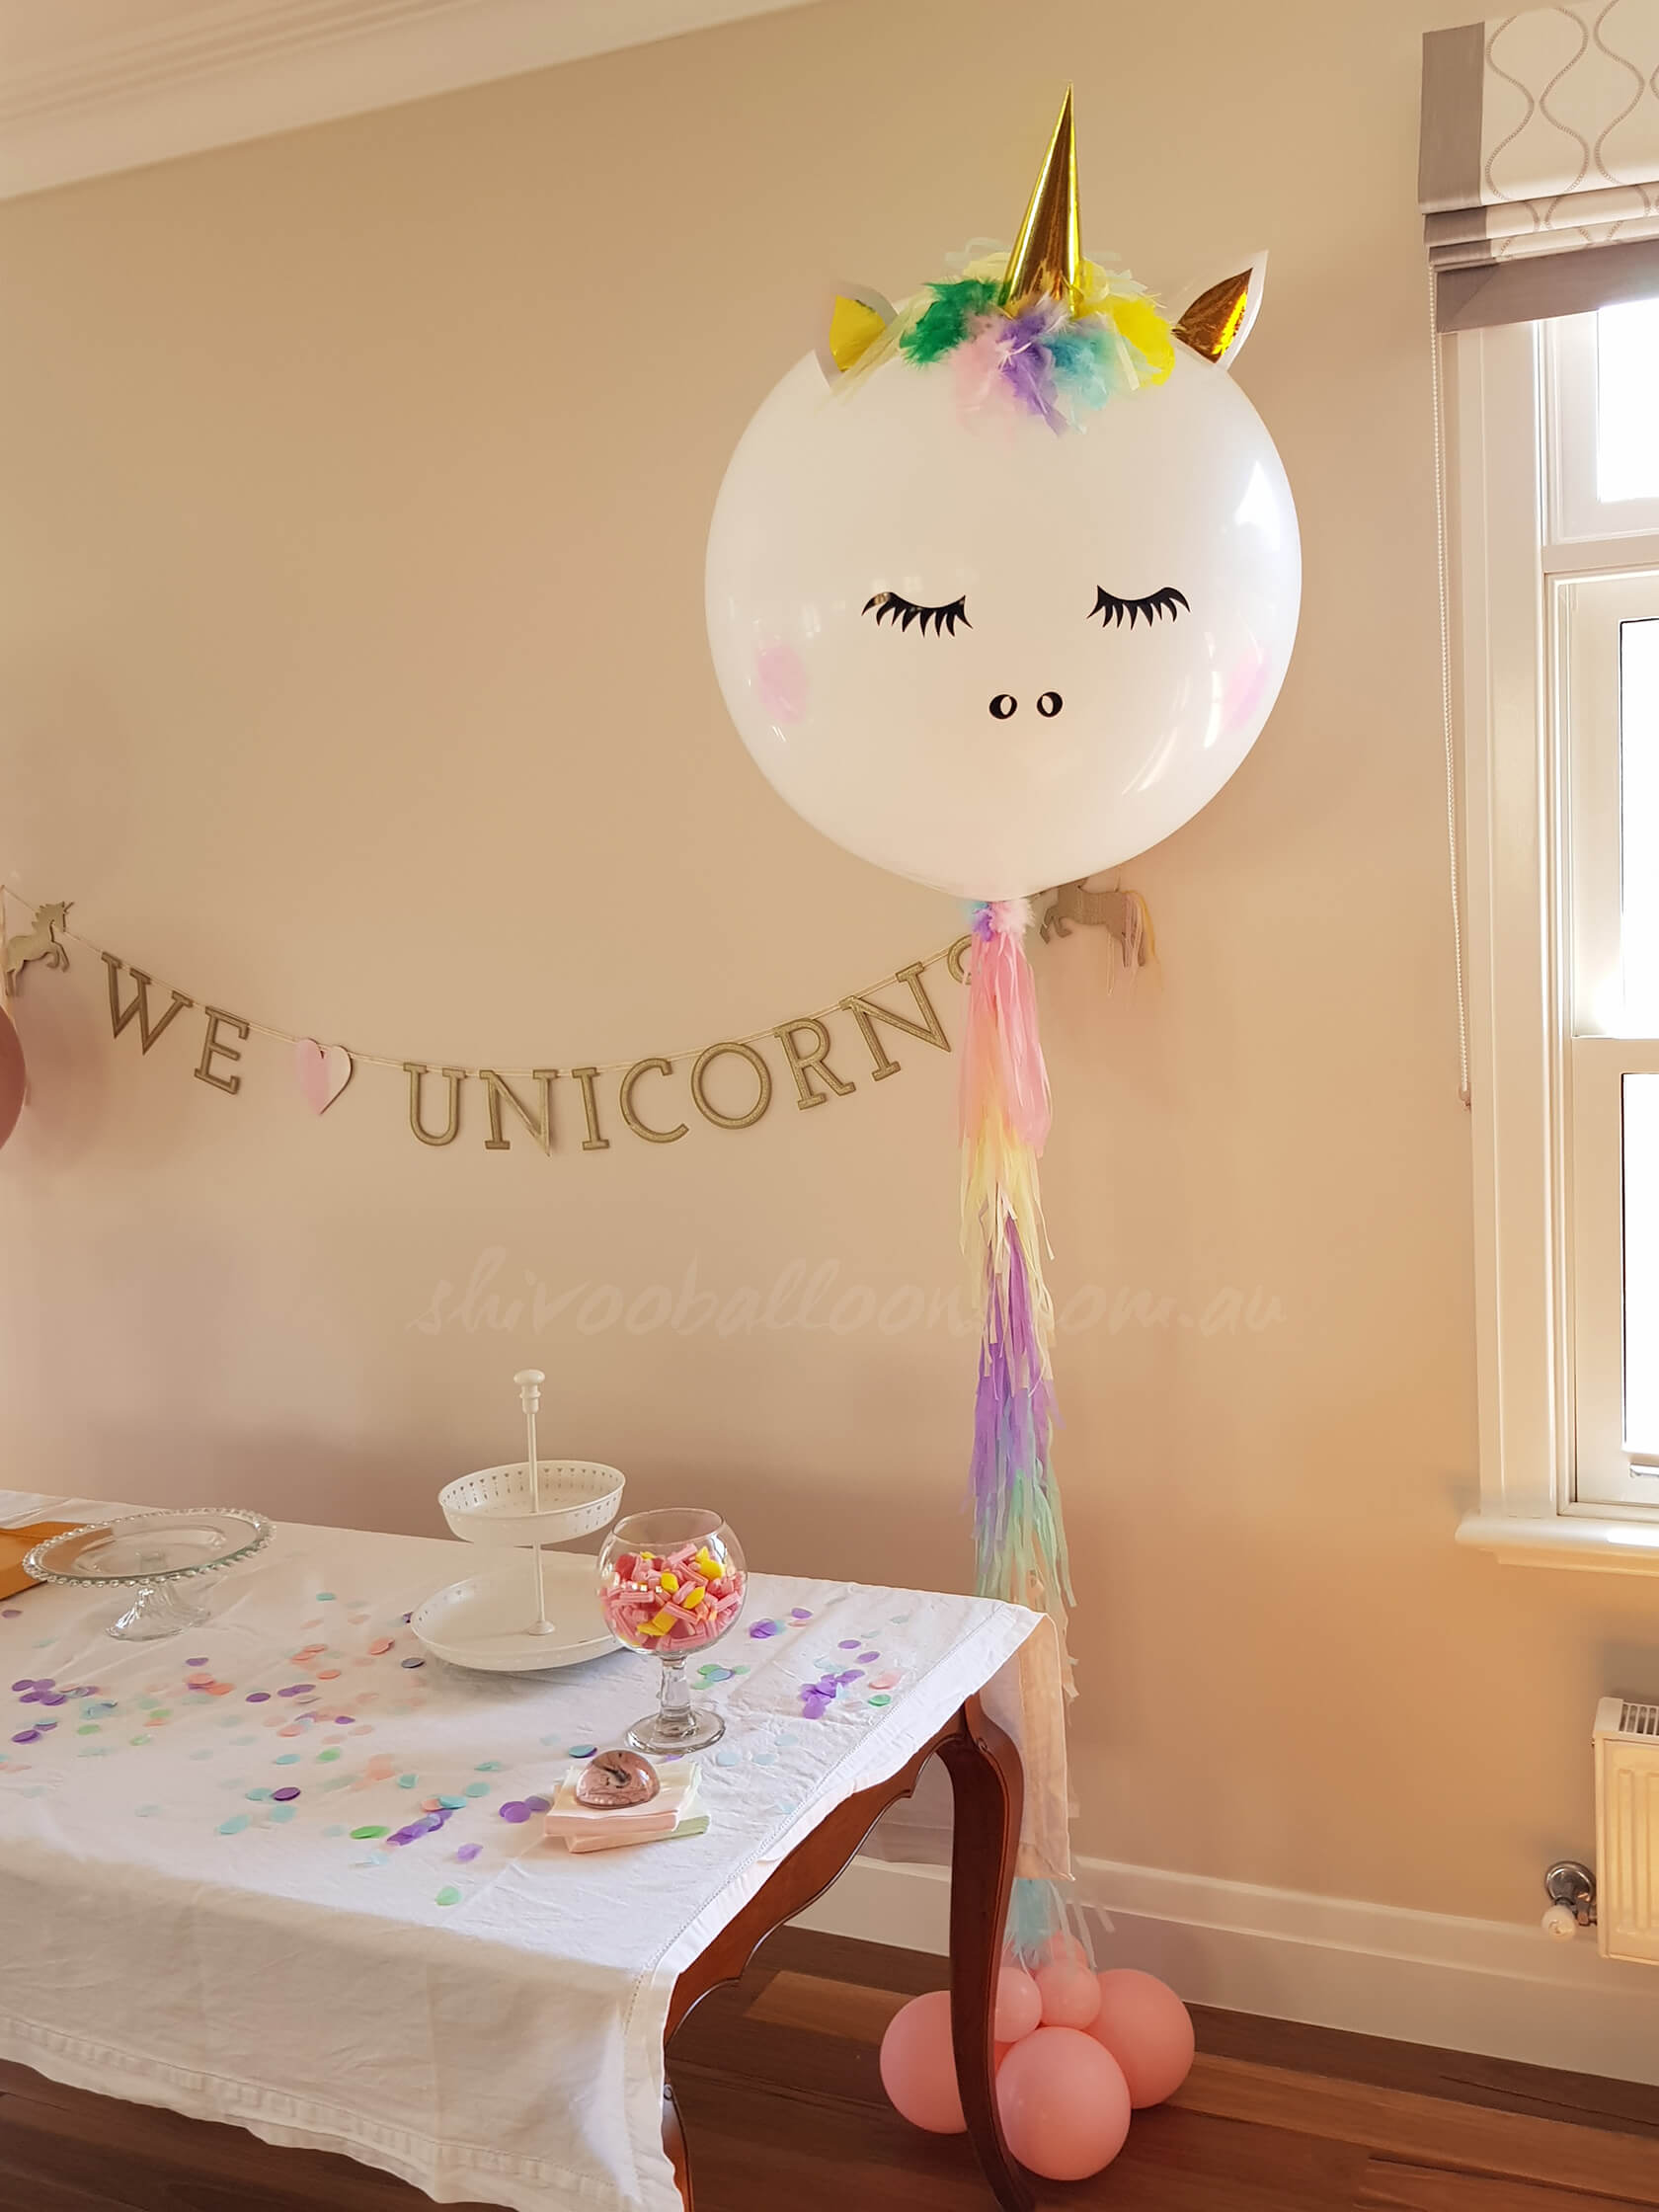 party decorators Unicorn Arrangement - see our events - dazzling balloons - shivoo balloons and decor specialists in coburg north